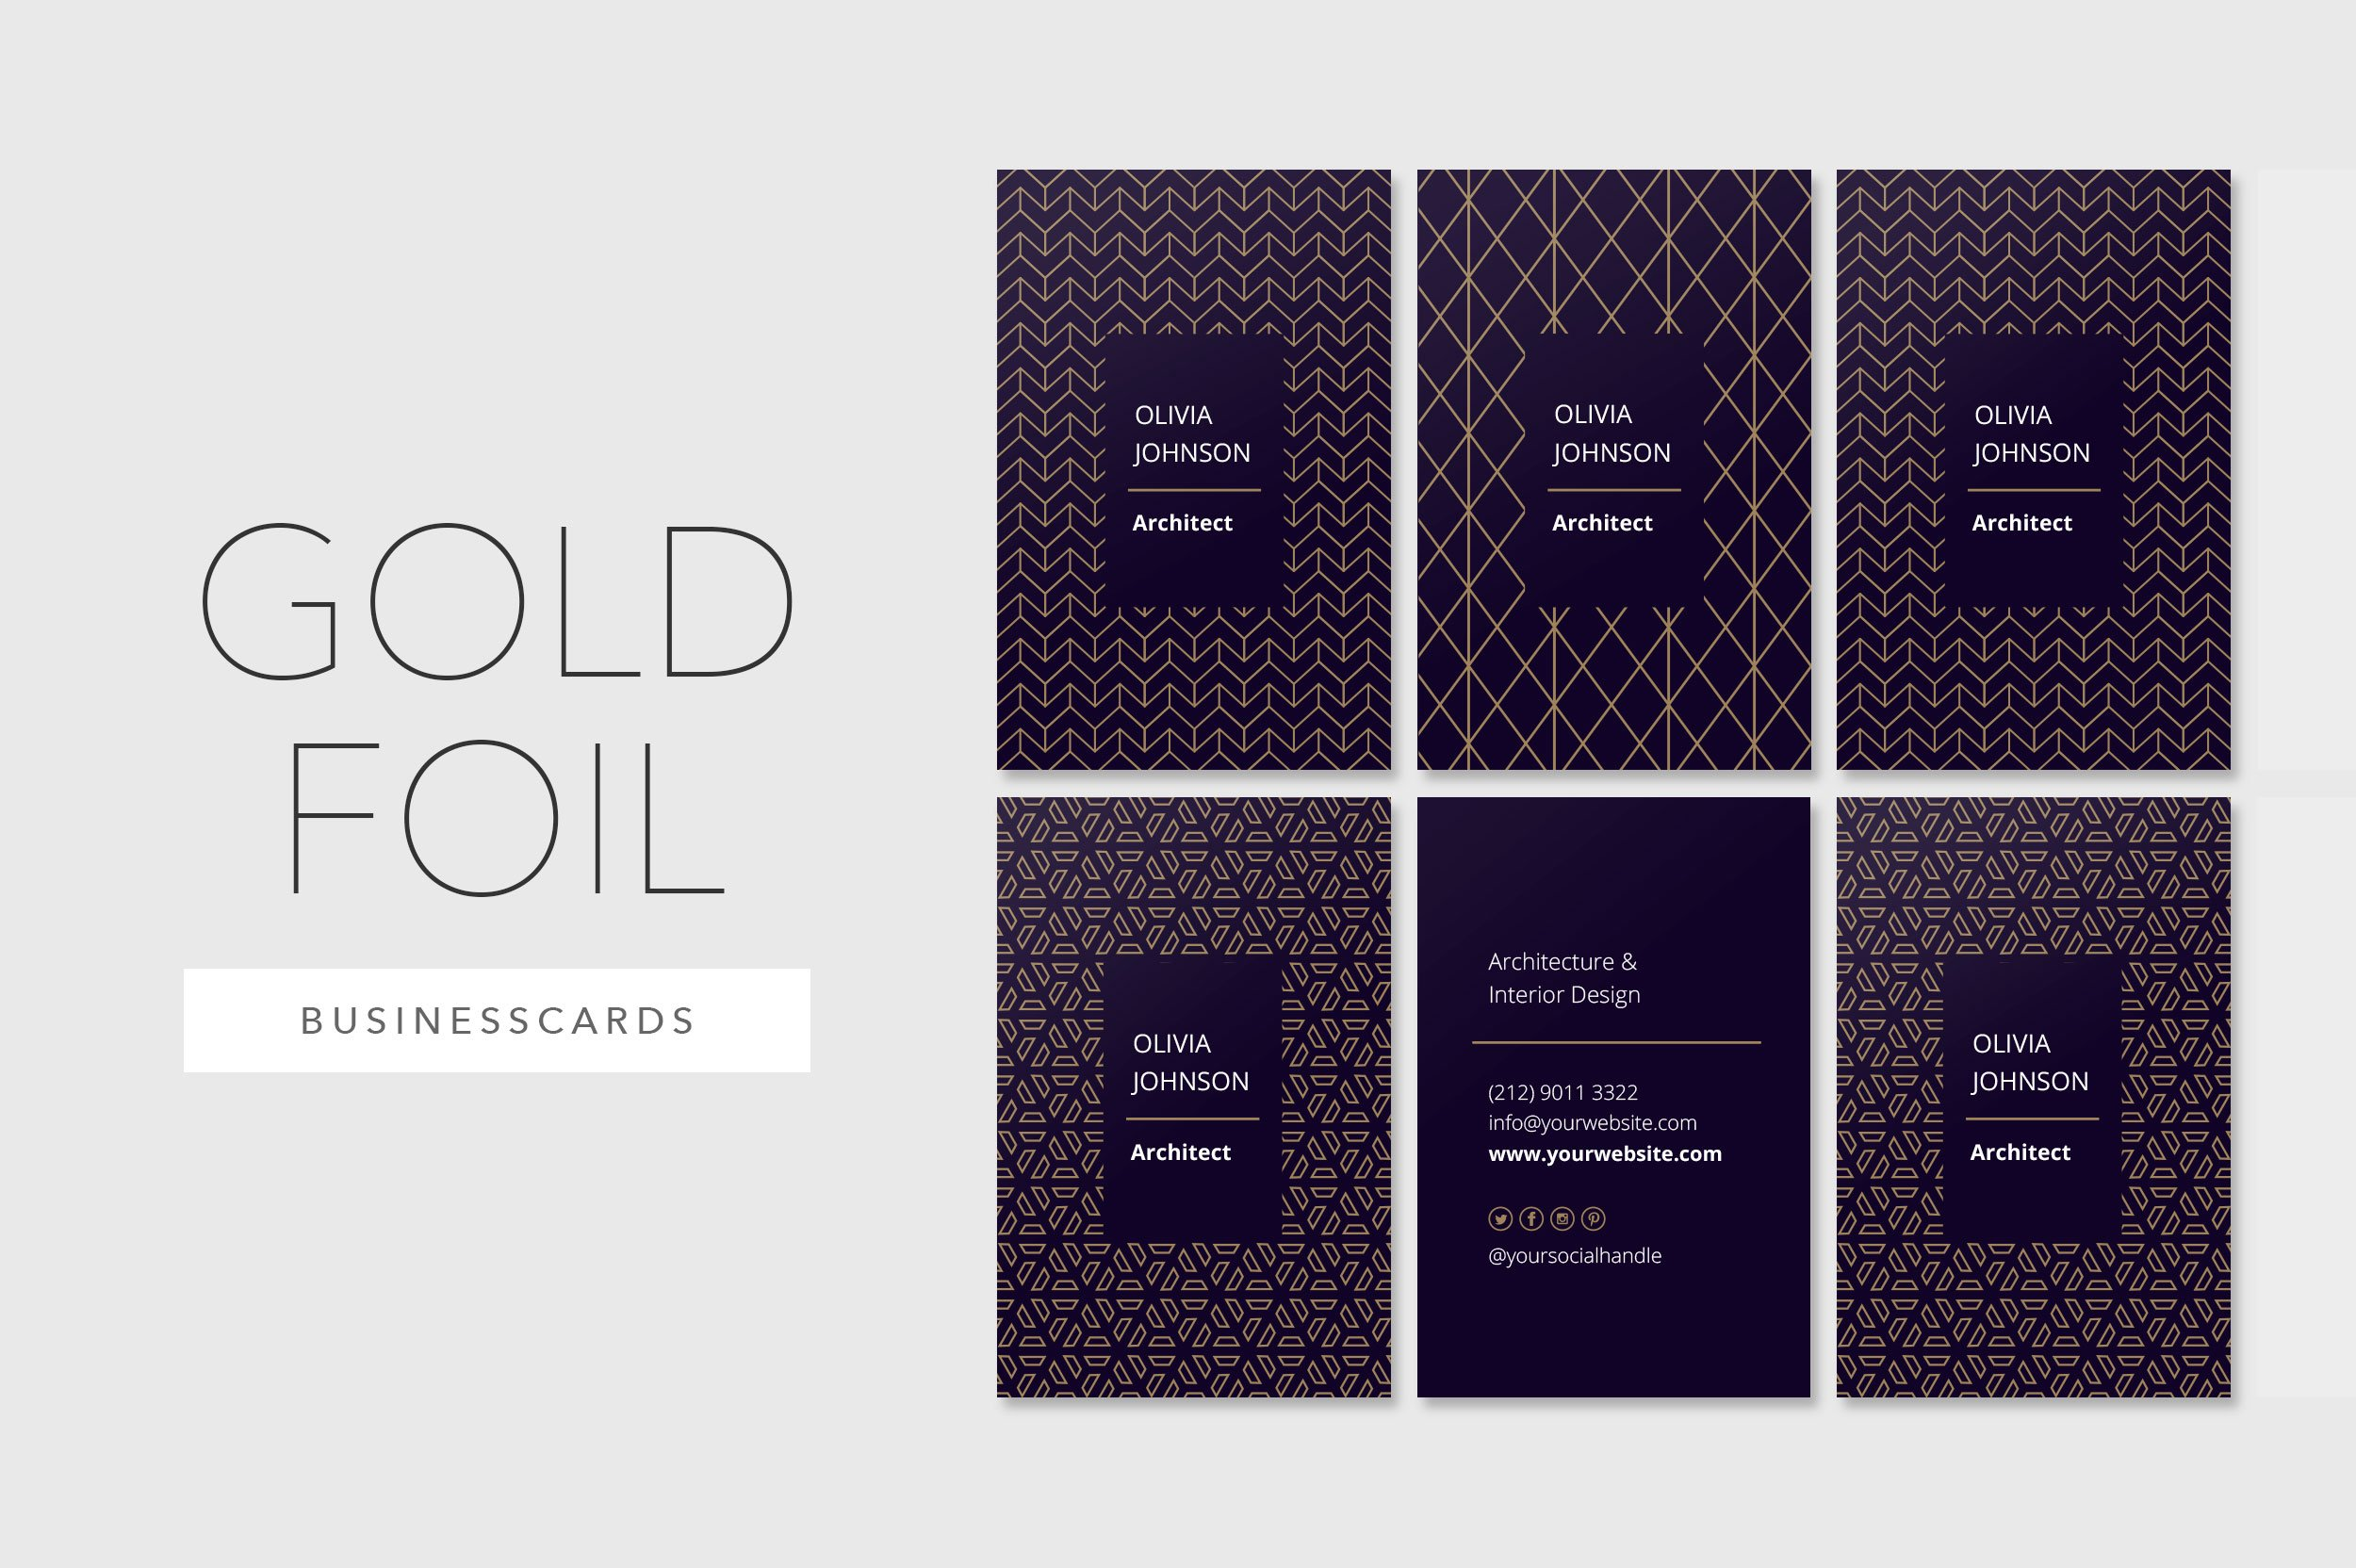 Gold foil business cards business card templates creative market colourmoves